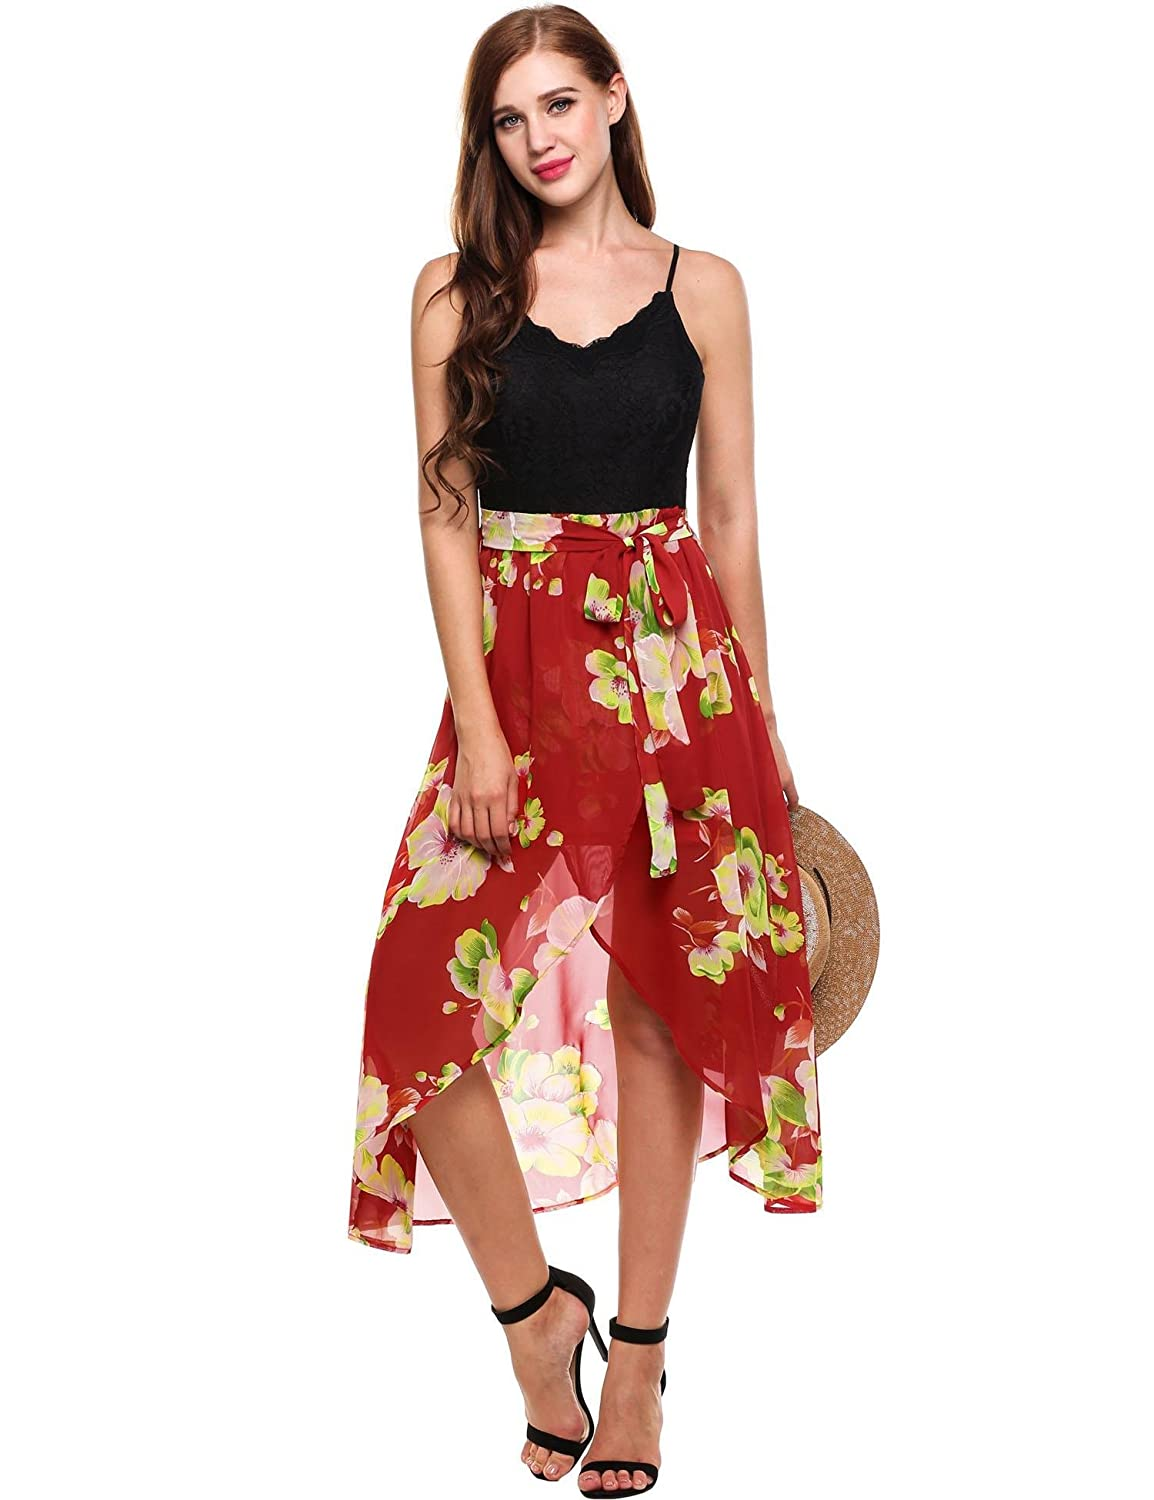 Vividy Formal Dresses Going Out Dresses Cheap Dresses Online Dresses at Amazon Womens Clothing store: